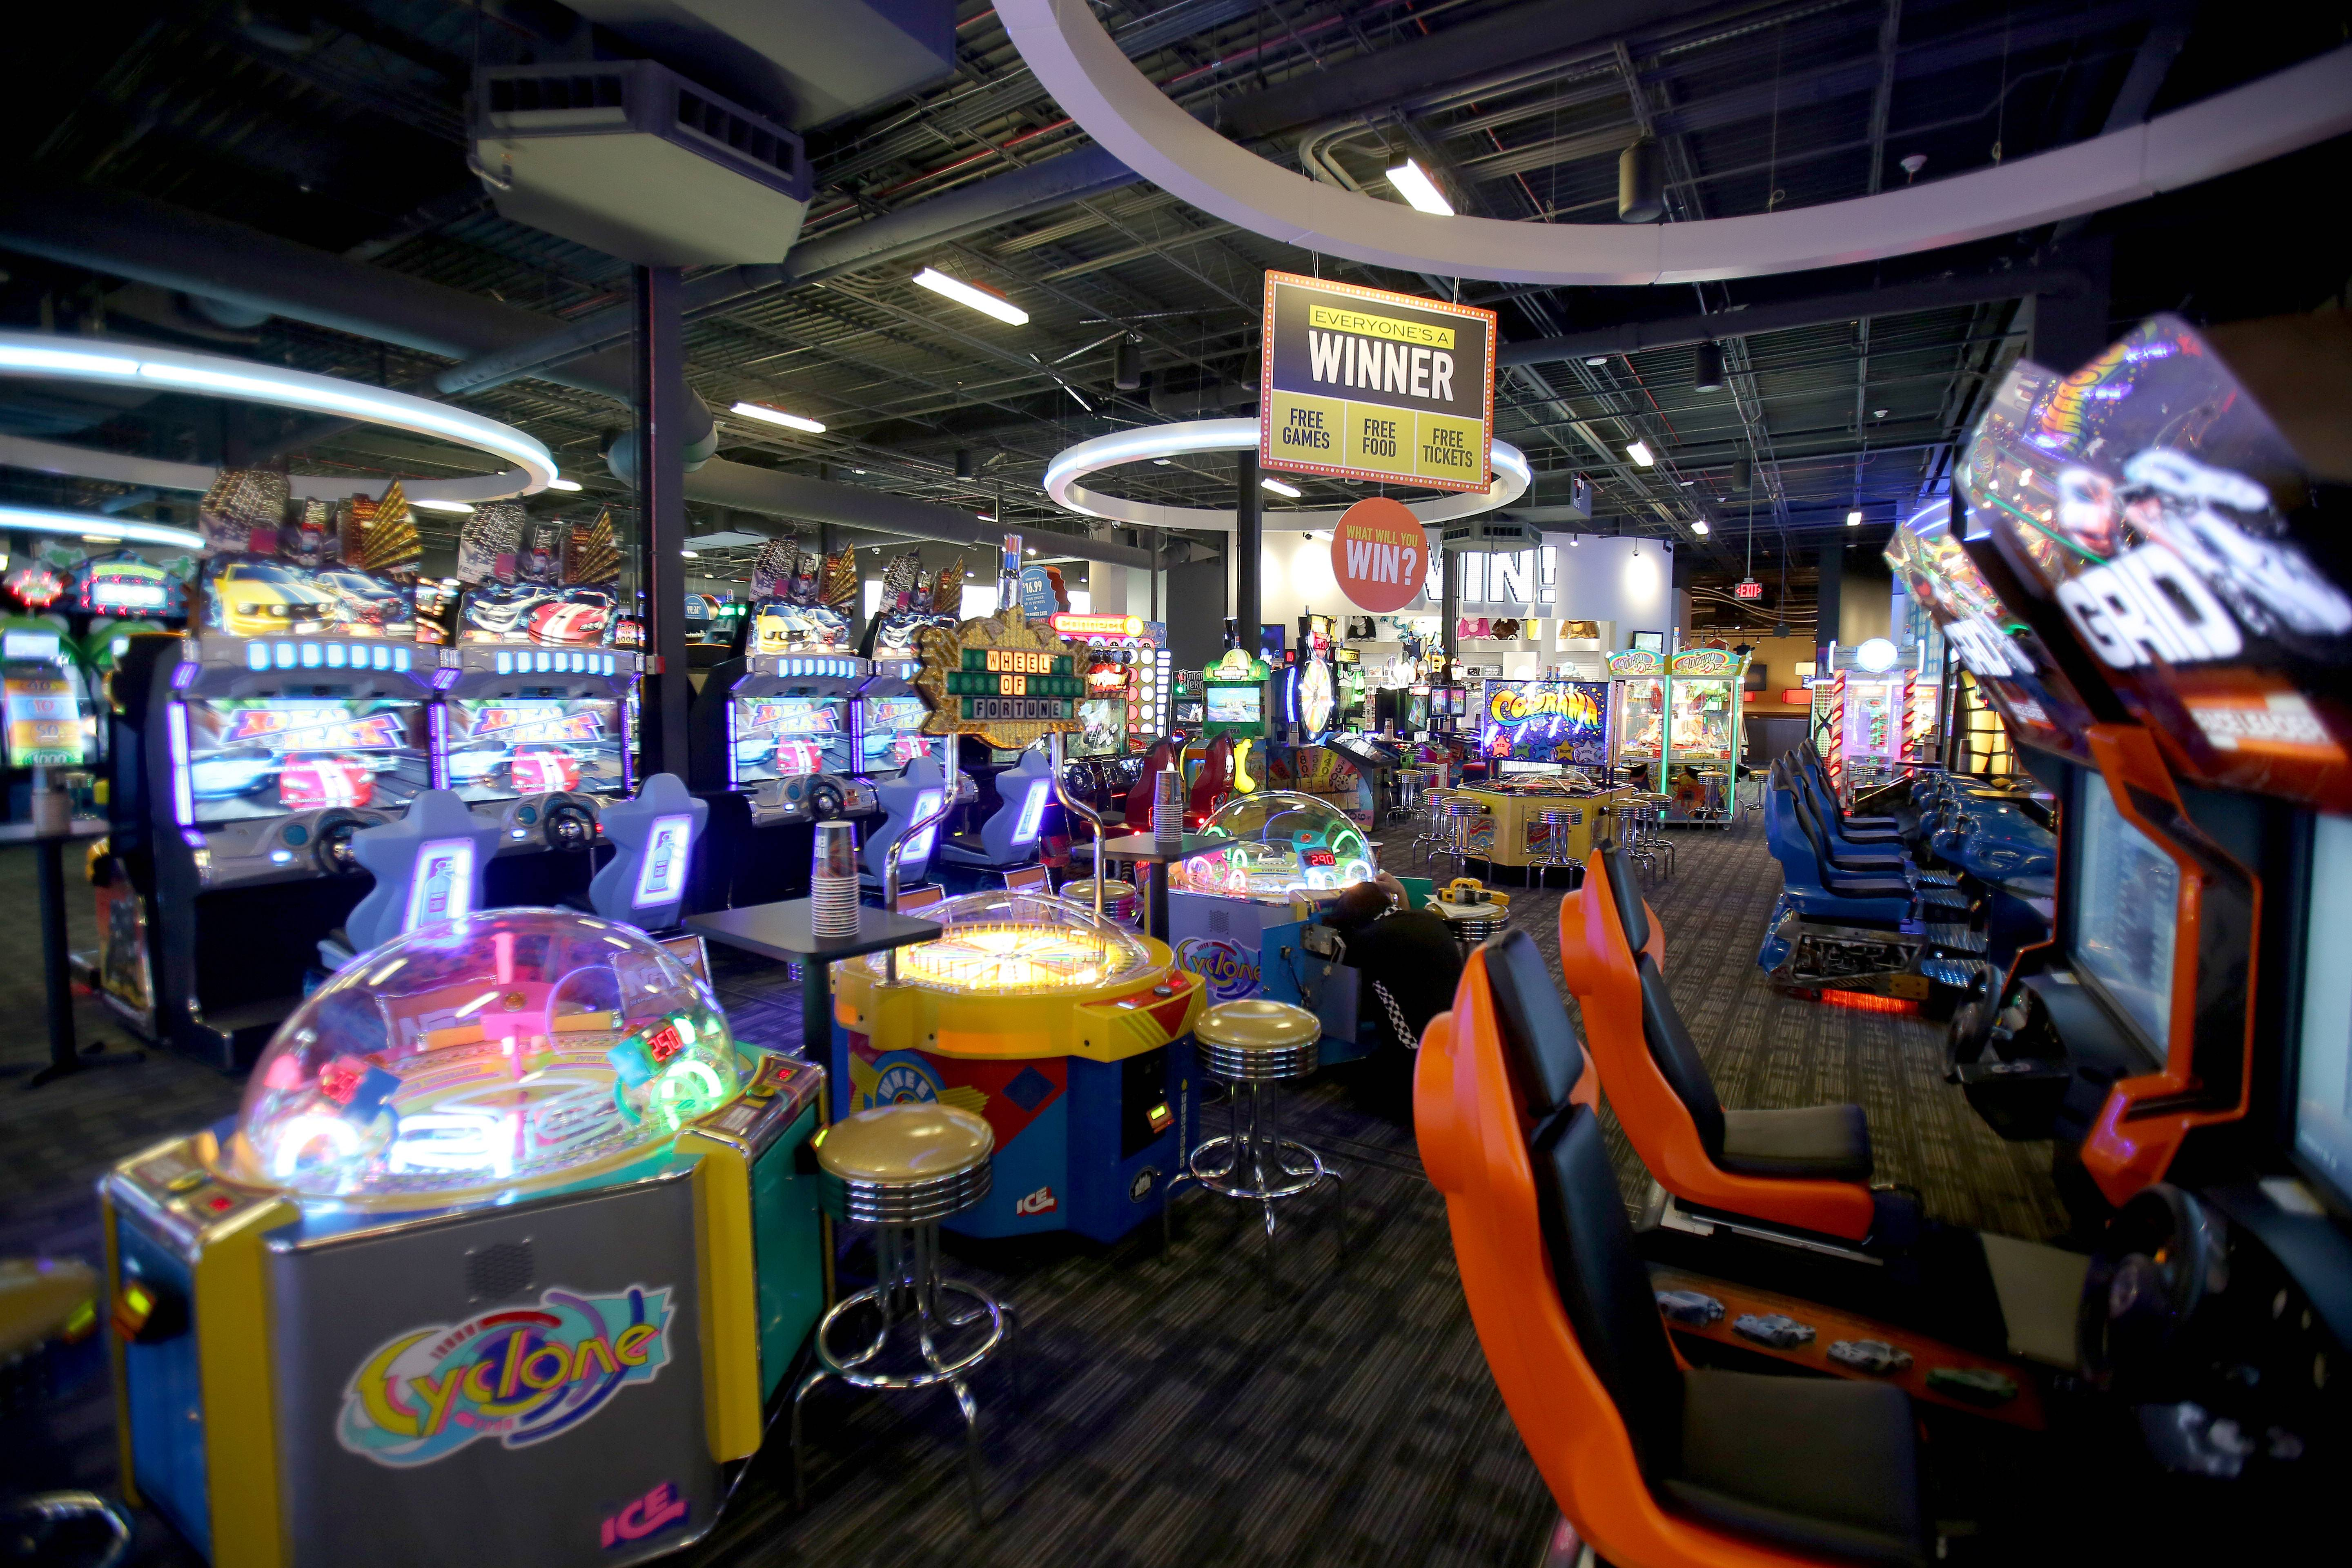 The Dave & Buster's restaurant/arcade chain will open its fourth Chicago-area location on Wednesday at Westfield Hawthorn mall in Vernon Hills.